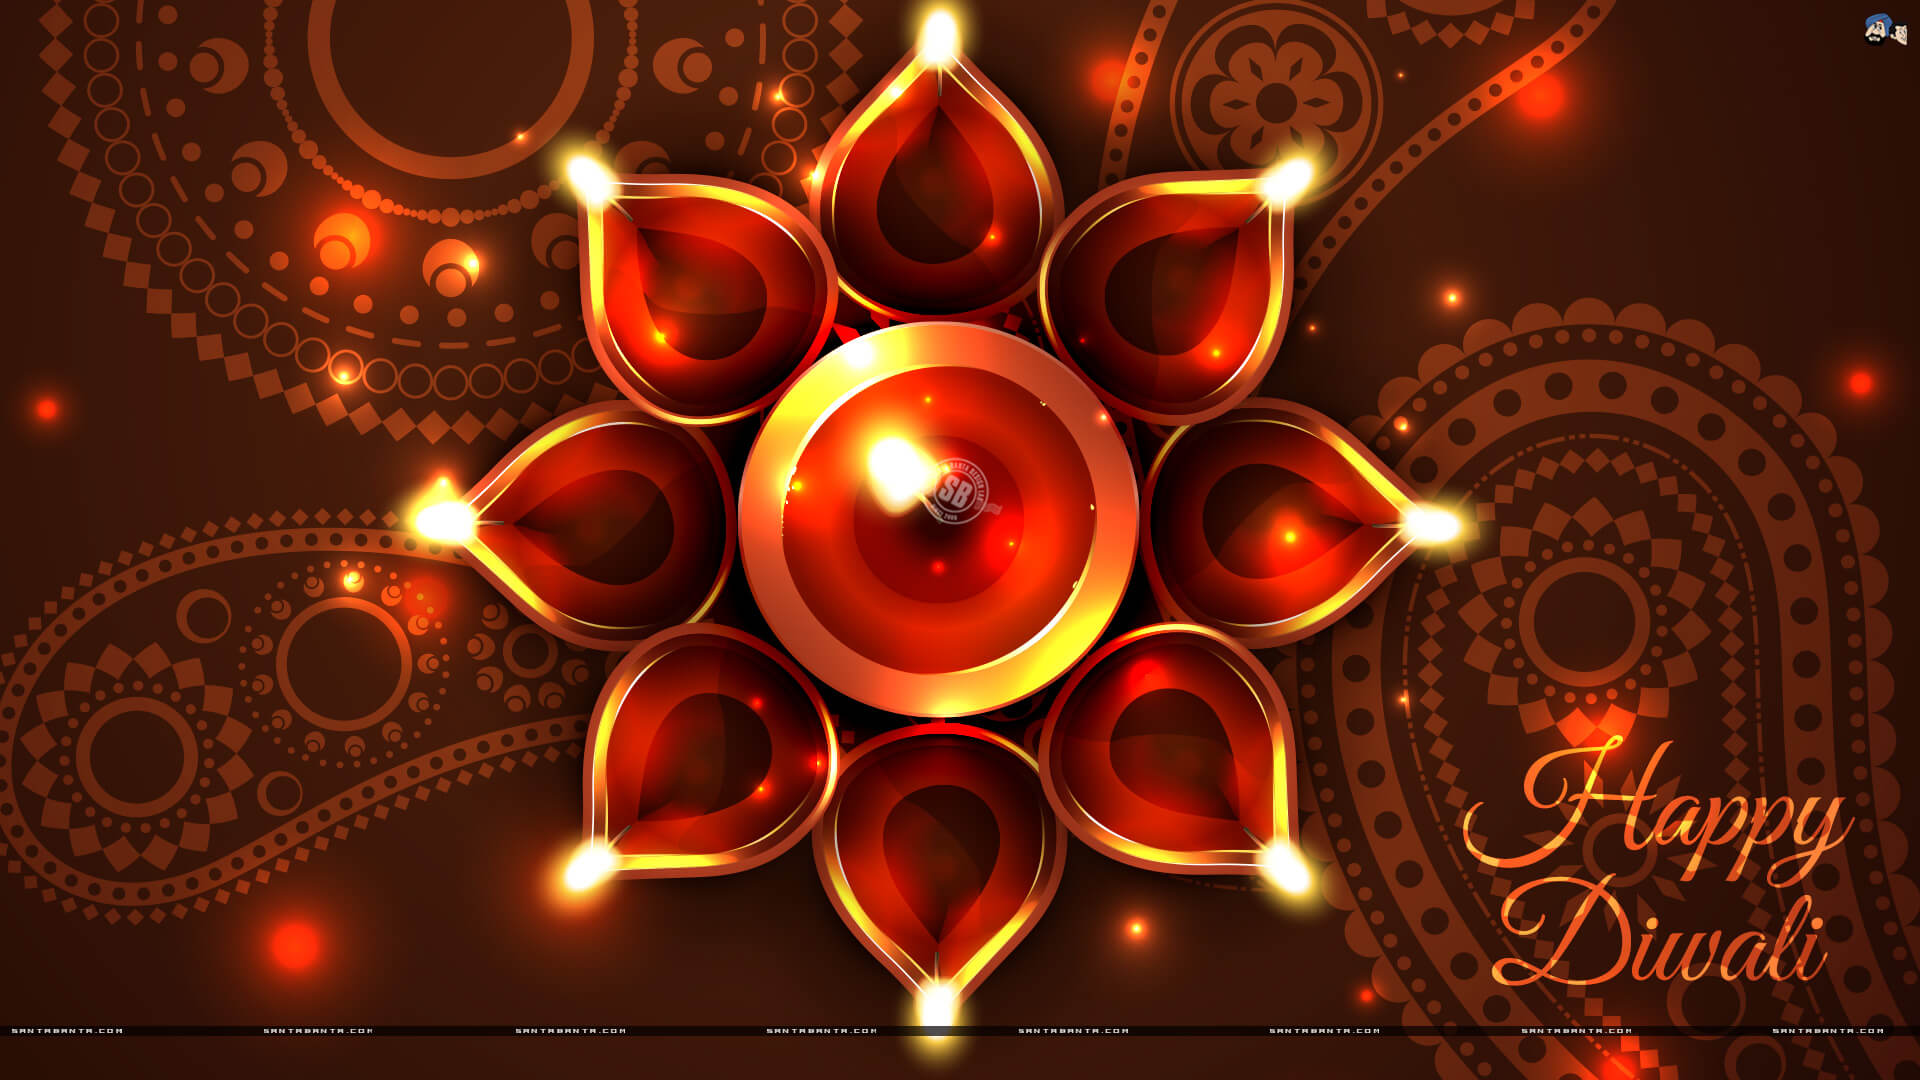 45 Beautiful Hd Diwali Images And Wallpaper To Feel The